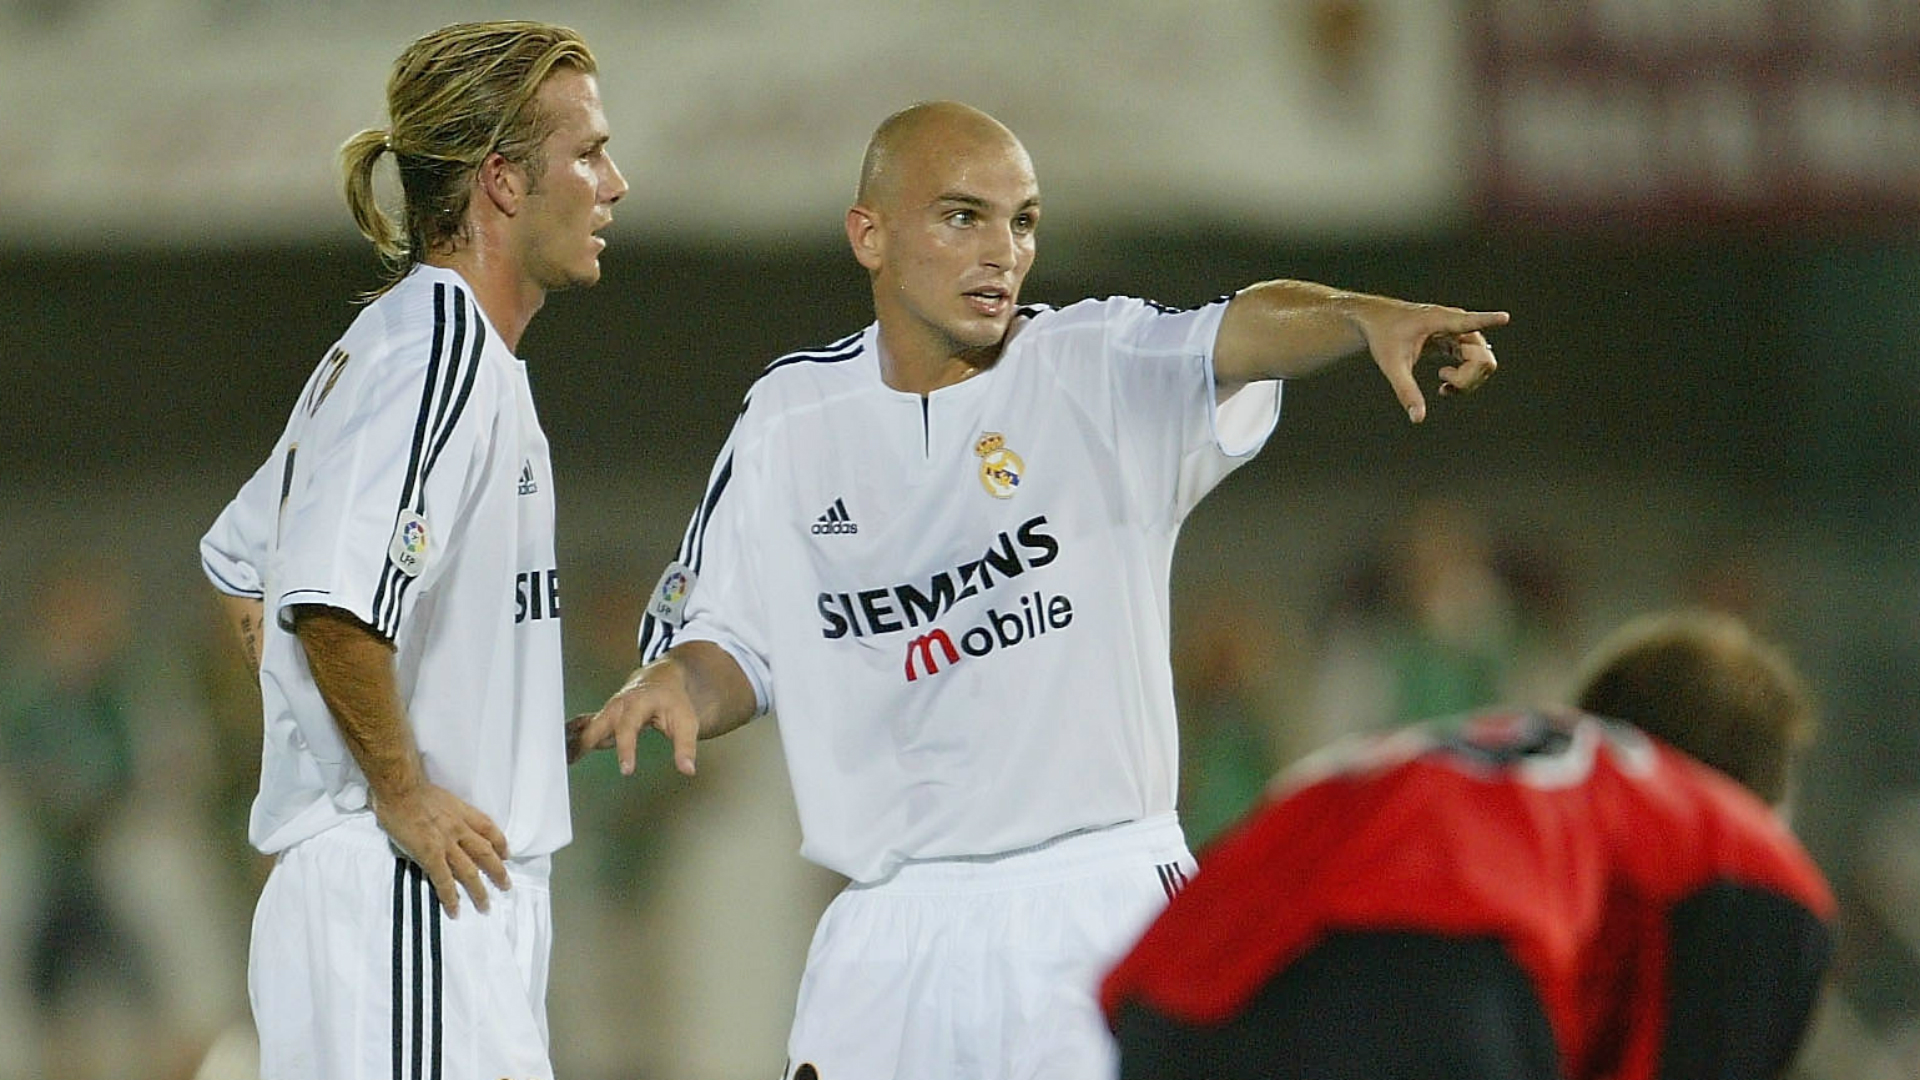 Cambiasso-cropped_1pazefnmk2lle17nbhrgg6b406